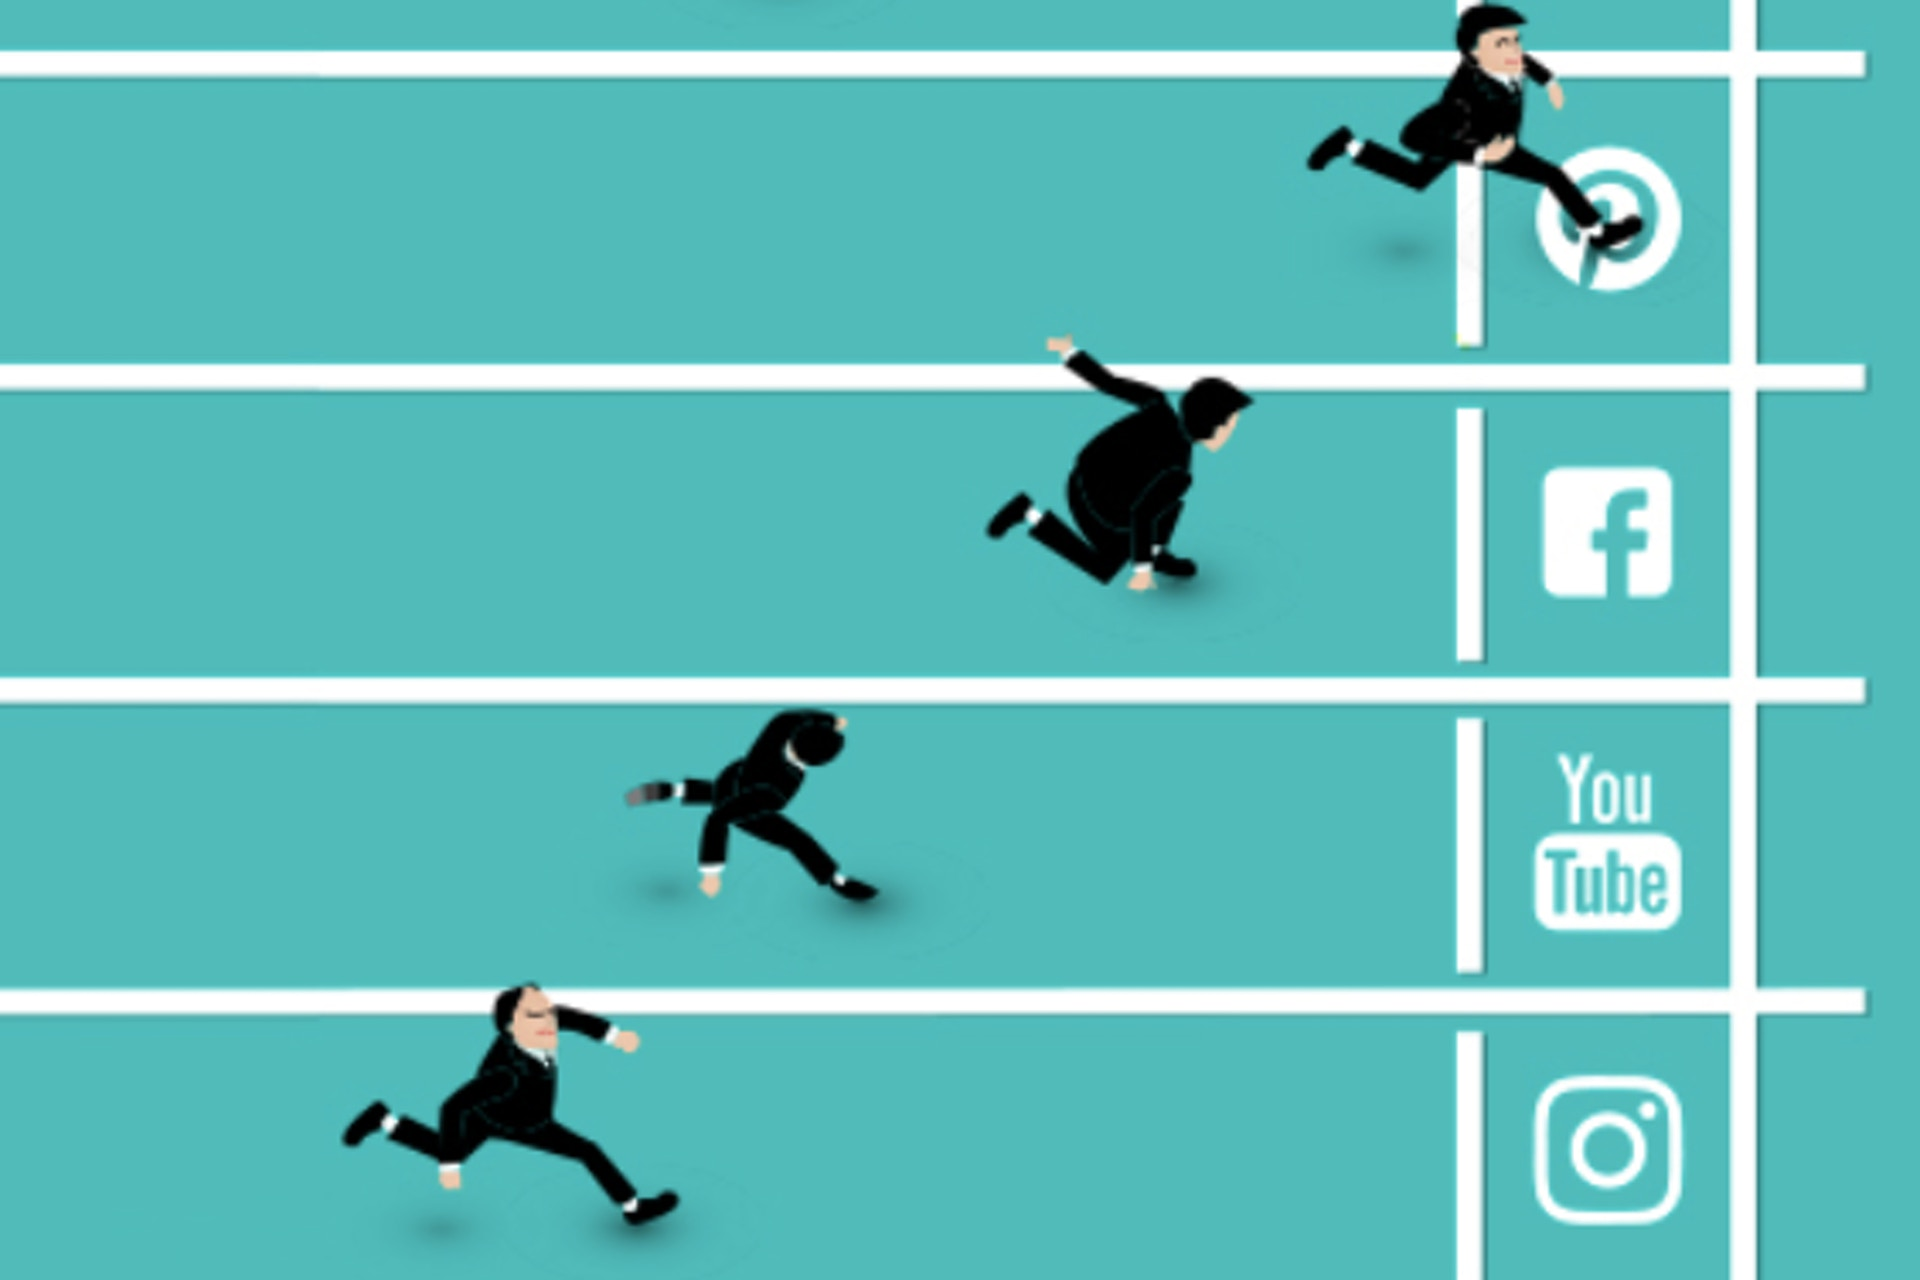 graphic image of athletic track with social media icons and people running towards finish line